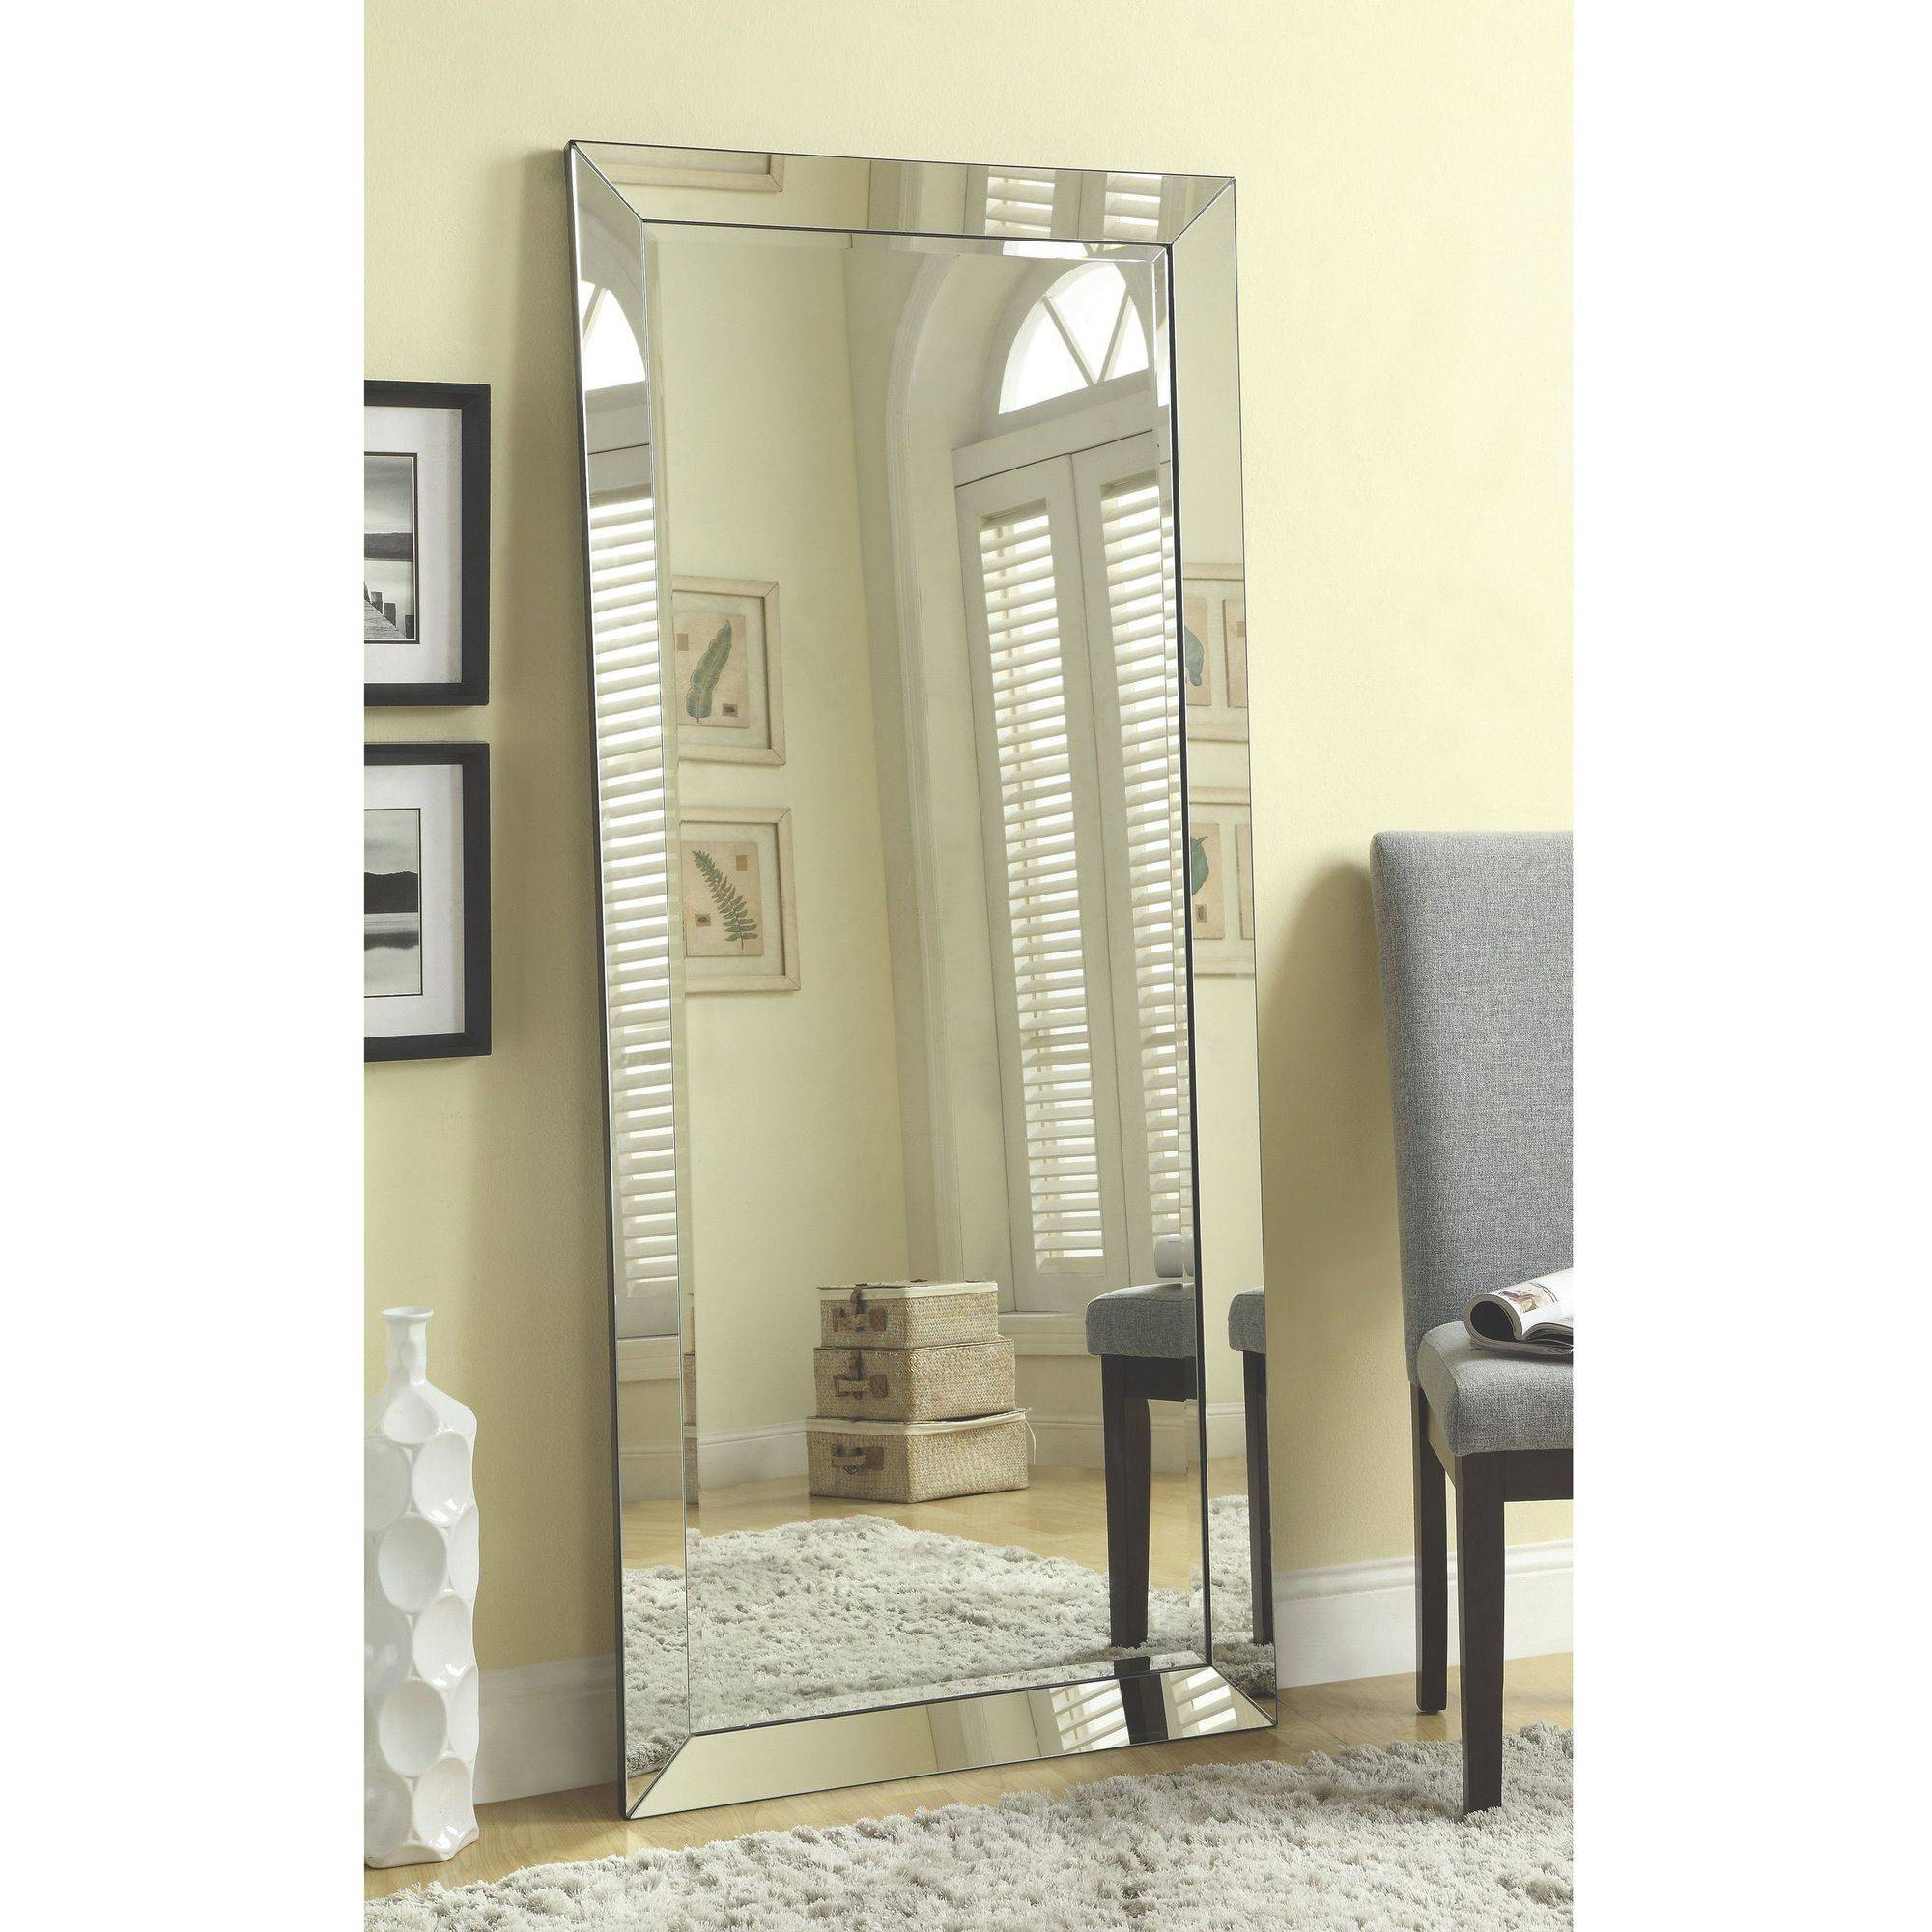 2020 Large Wall Mirrors Without Frame For 34 Most Unbeatable Long Wall Mirrors Mirror No Frame Large Frameless (View 2 of 20)